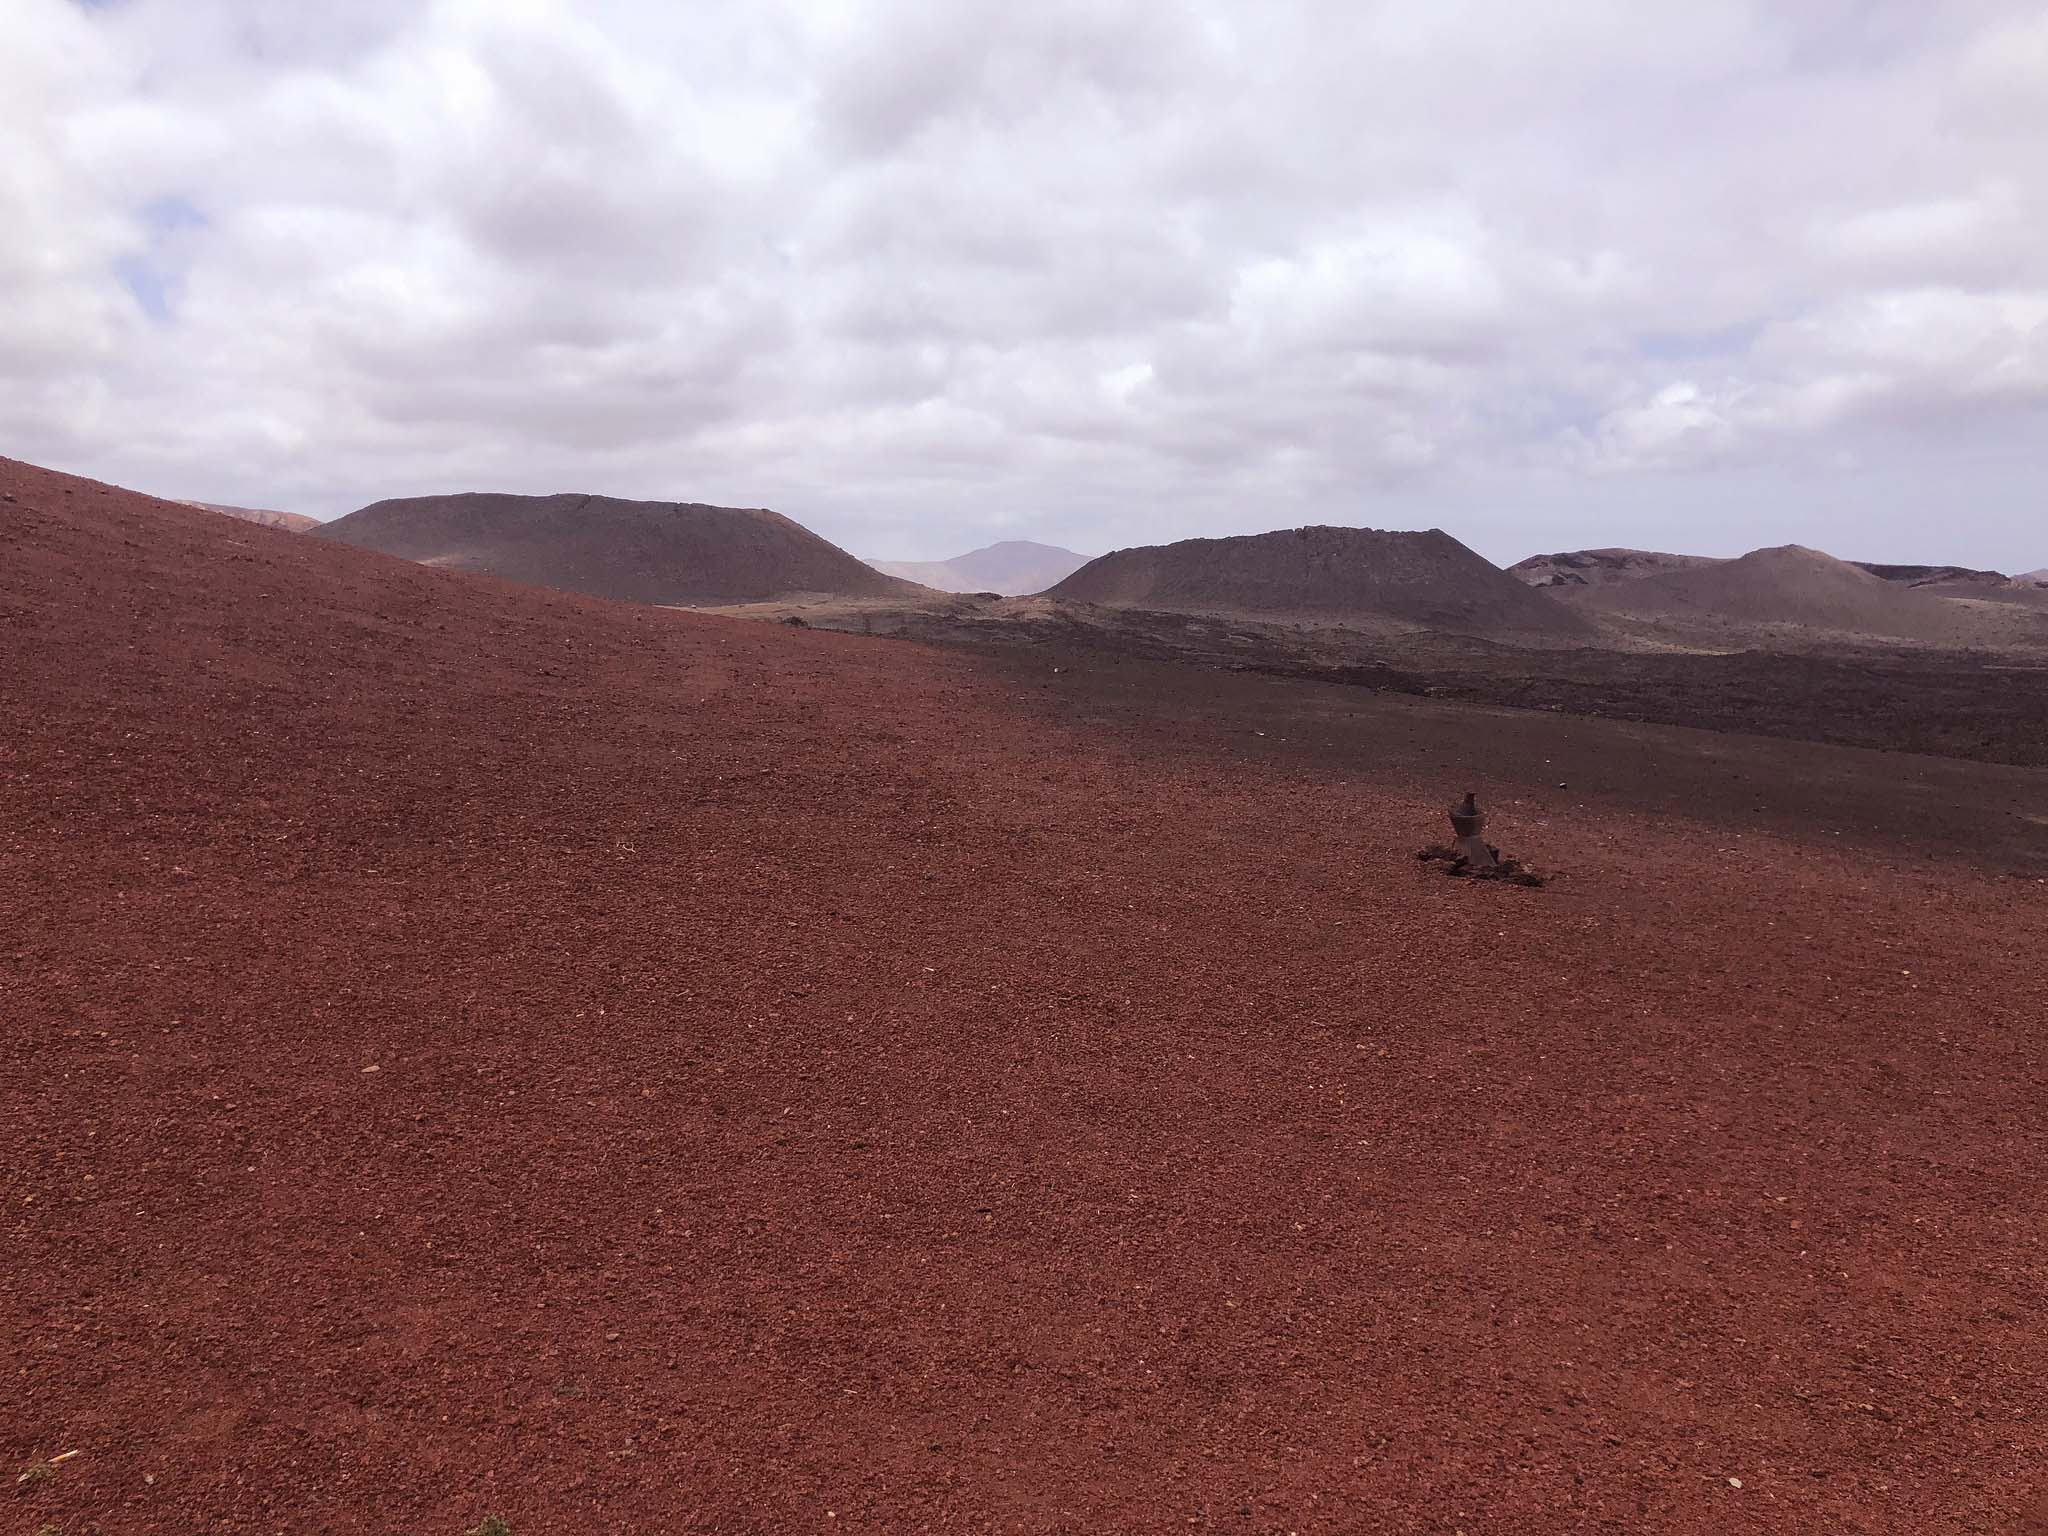 mars on earth in lanzarote